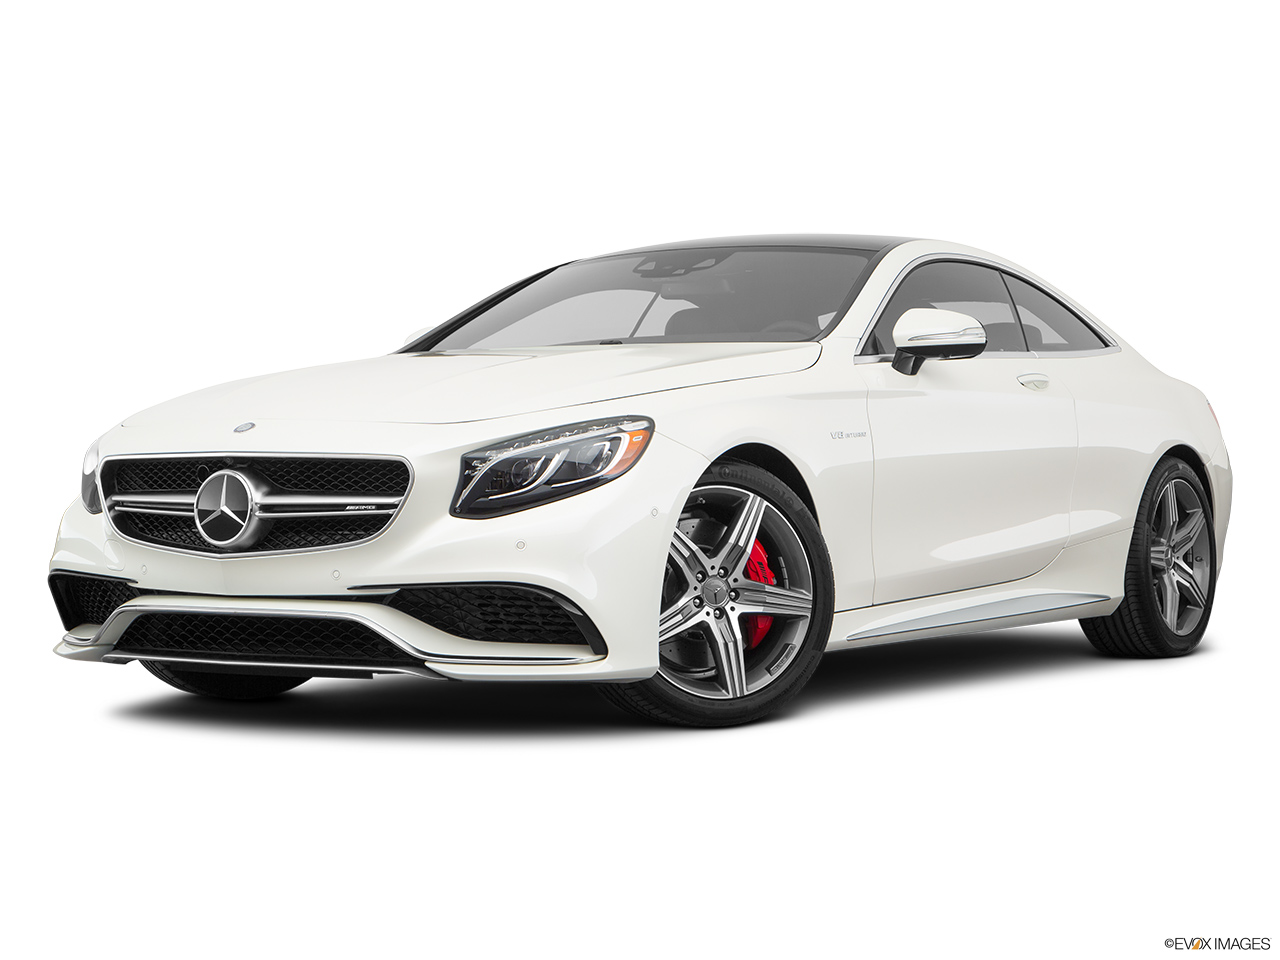 Car pictures list for mercedes benz s 63 amg coupe 2017 for Mercedes benz model list